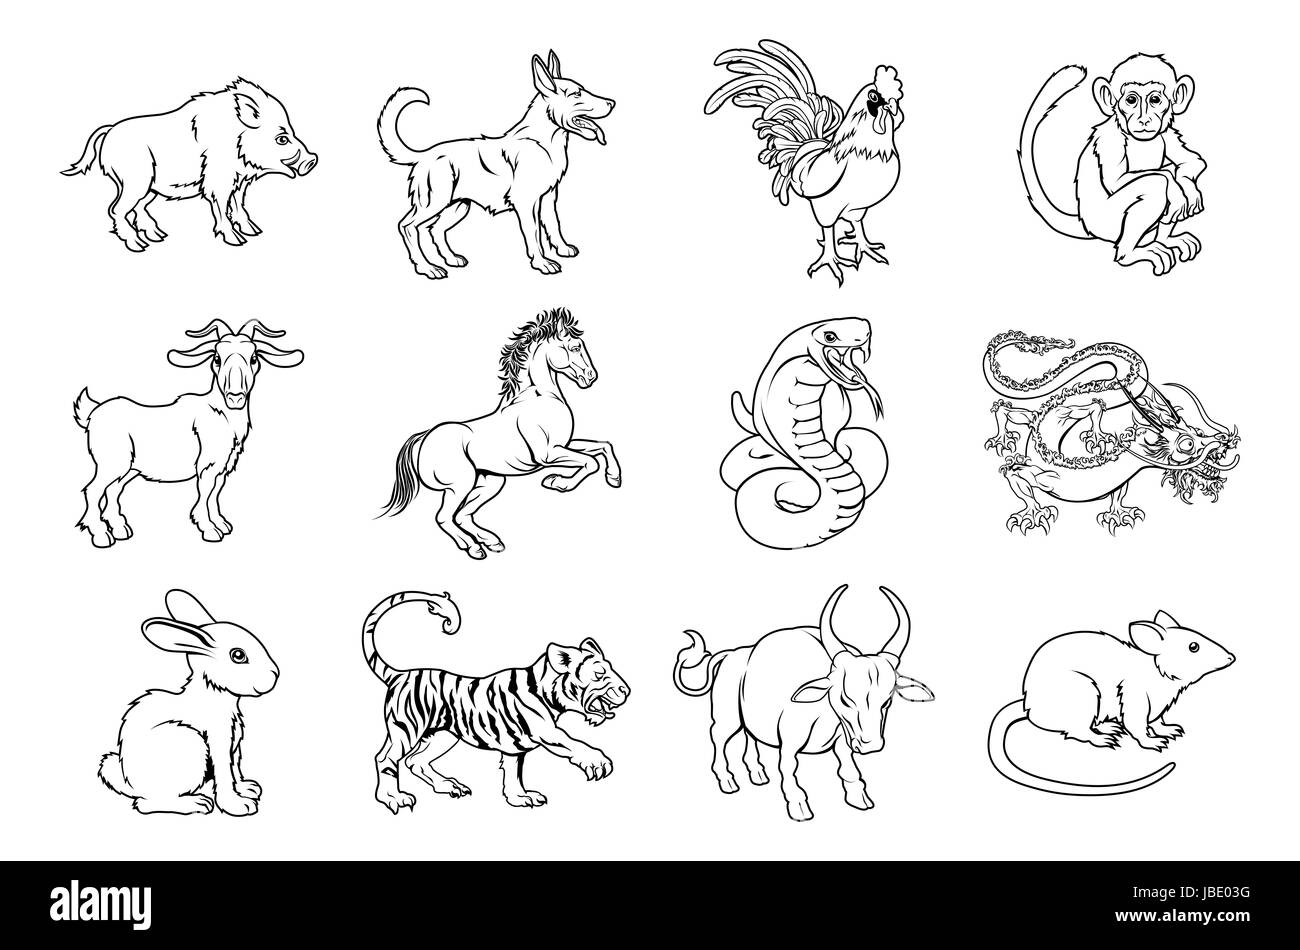 Illustrations of all twelve chinese zodiac sign icon animals stock illustrations of all twelve chinese zodiac sign icon animals biocorpaavc